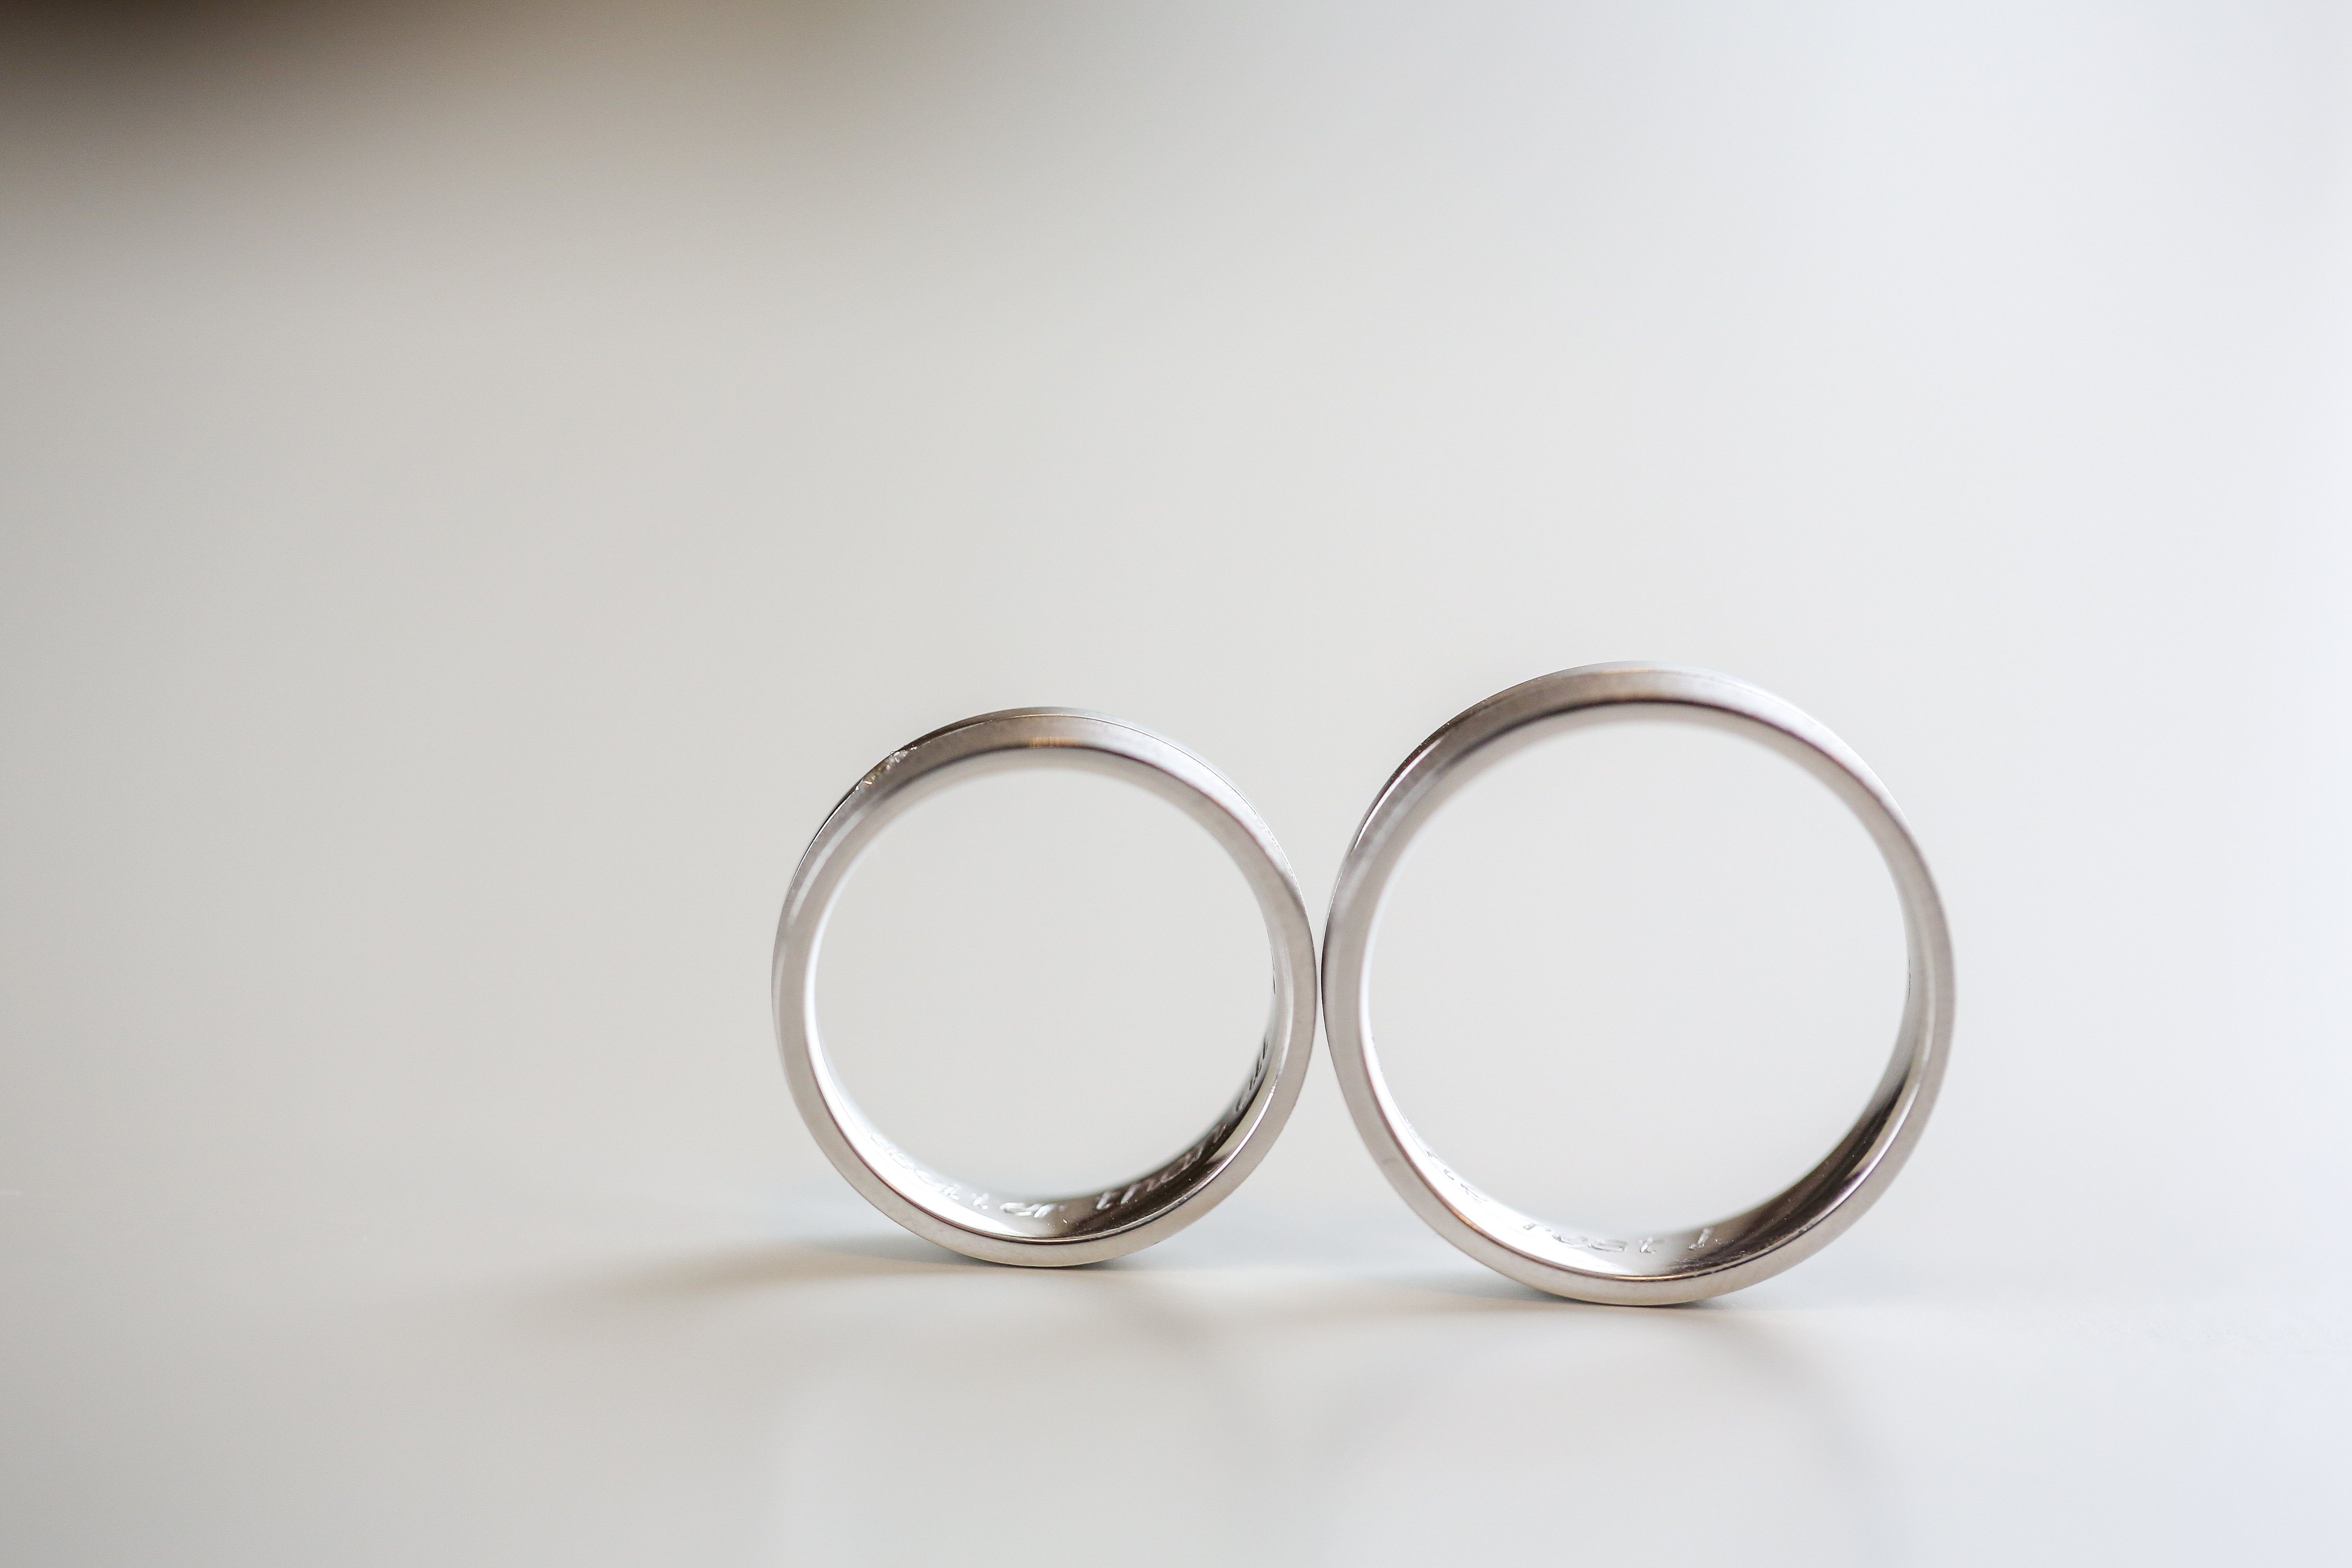 Wedding rings on isolated background